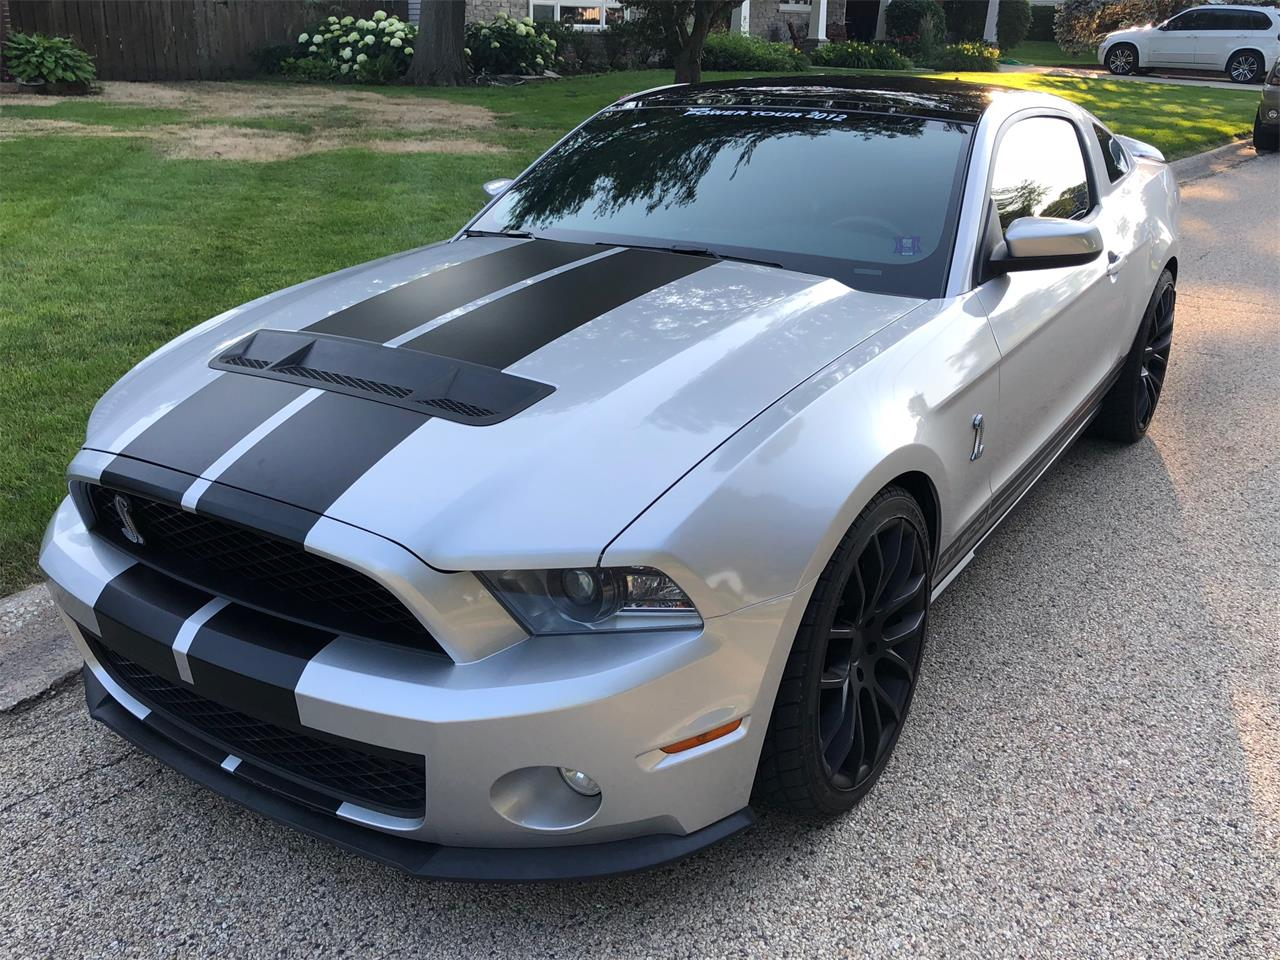 2011 Ford Mustang (CC-1141294) for sale in LAKE ZURICH, Illinois